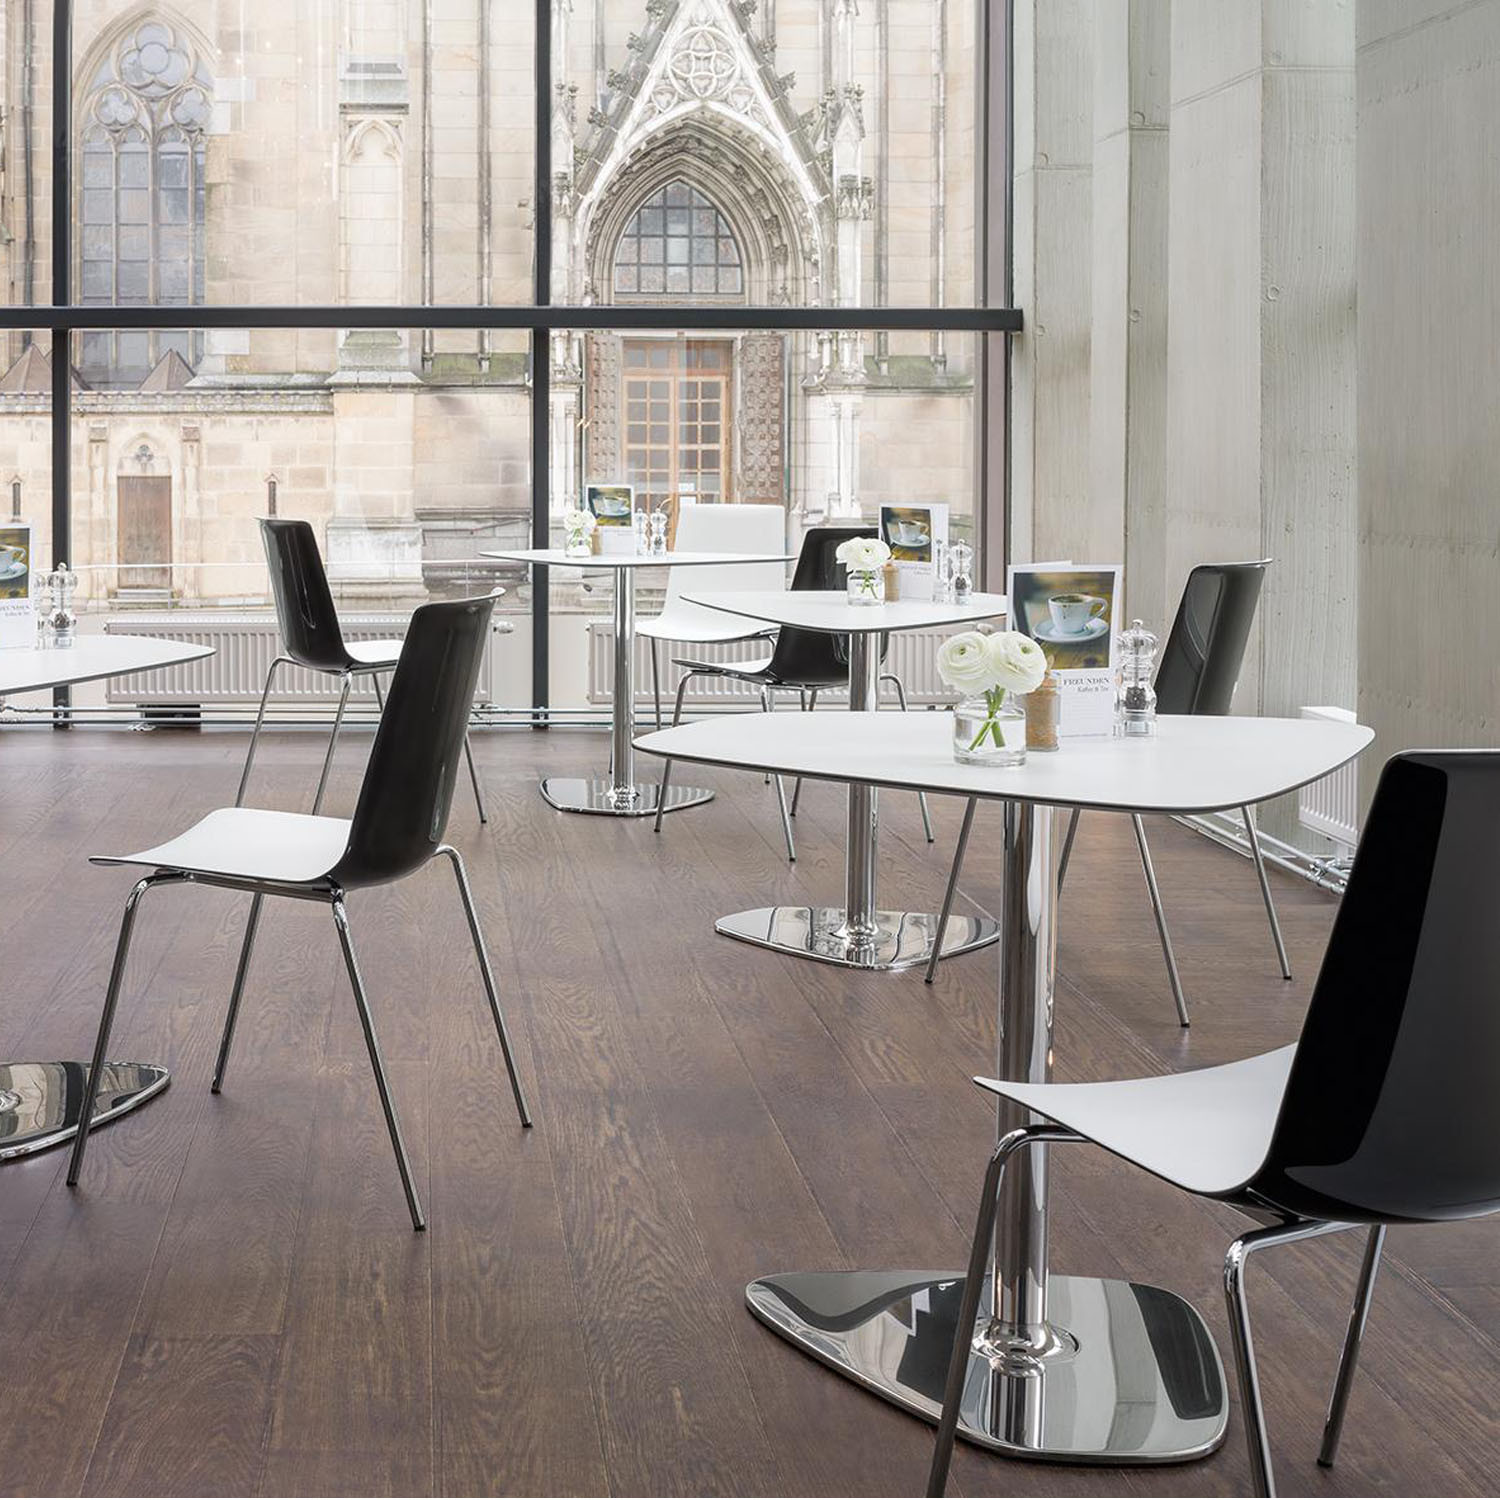 Nooi Cafe Seating by Wiesner Hager